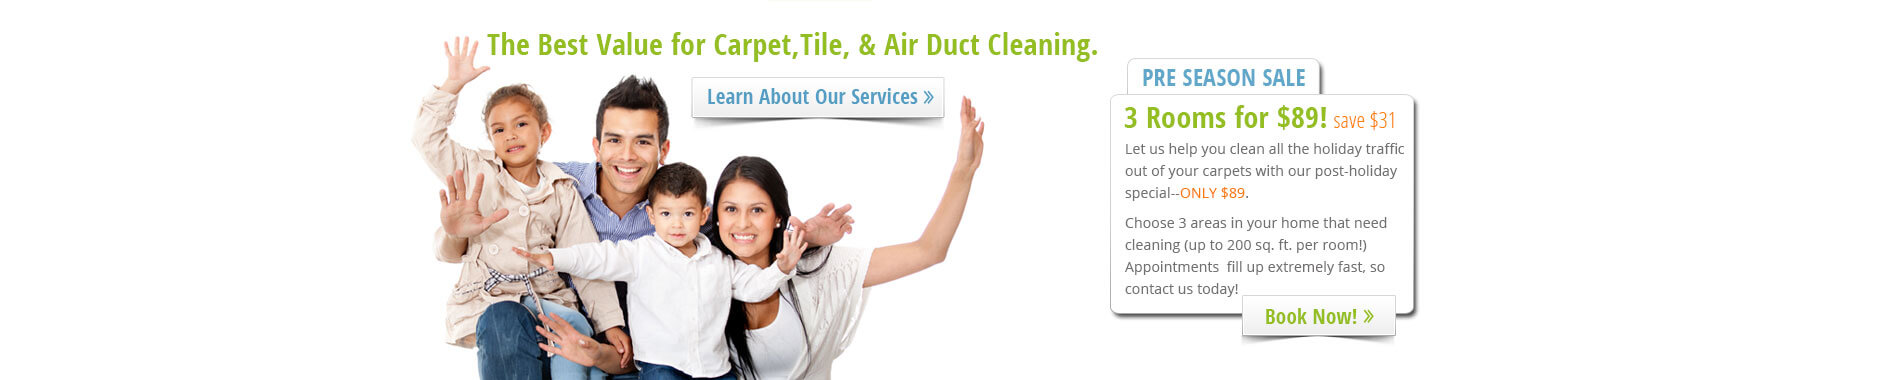 Carpet, Tile & Air Duct Cleaning